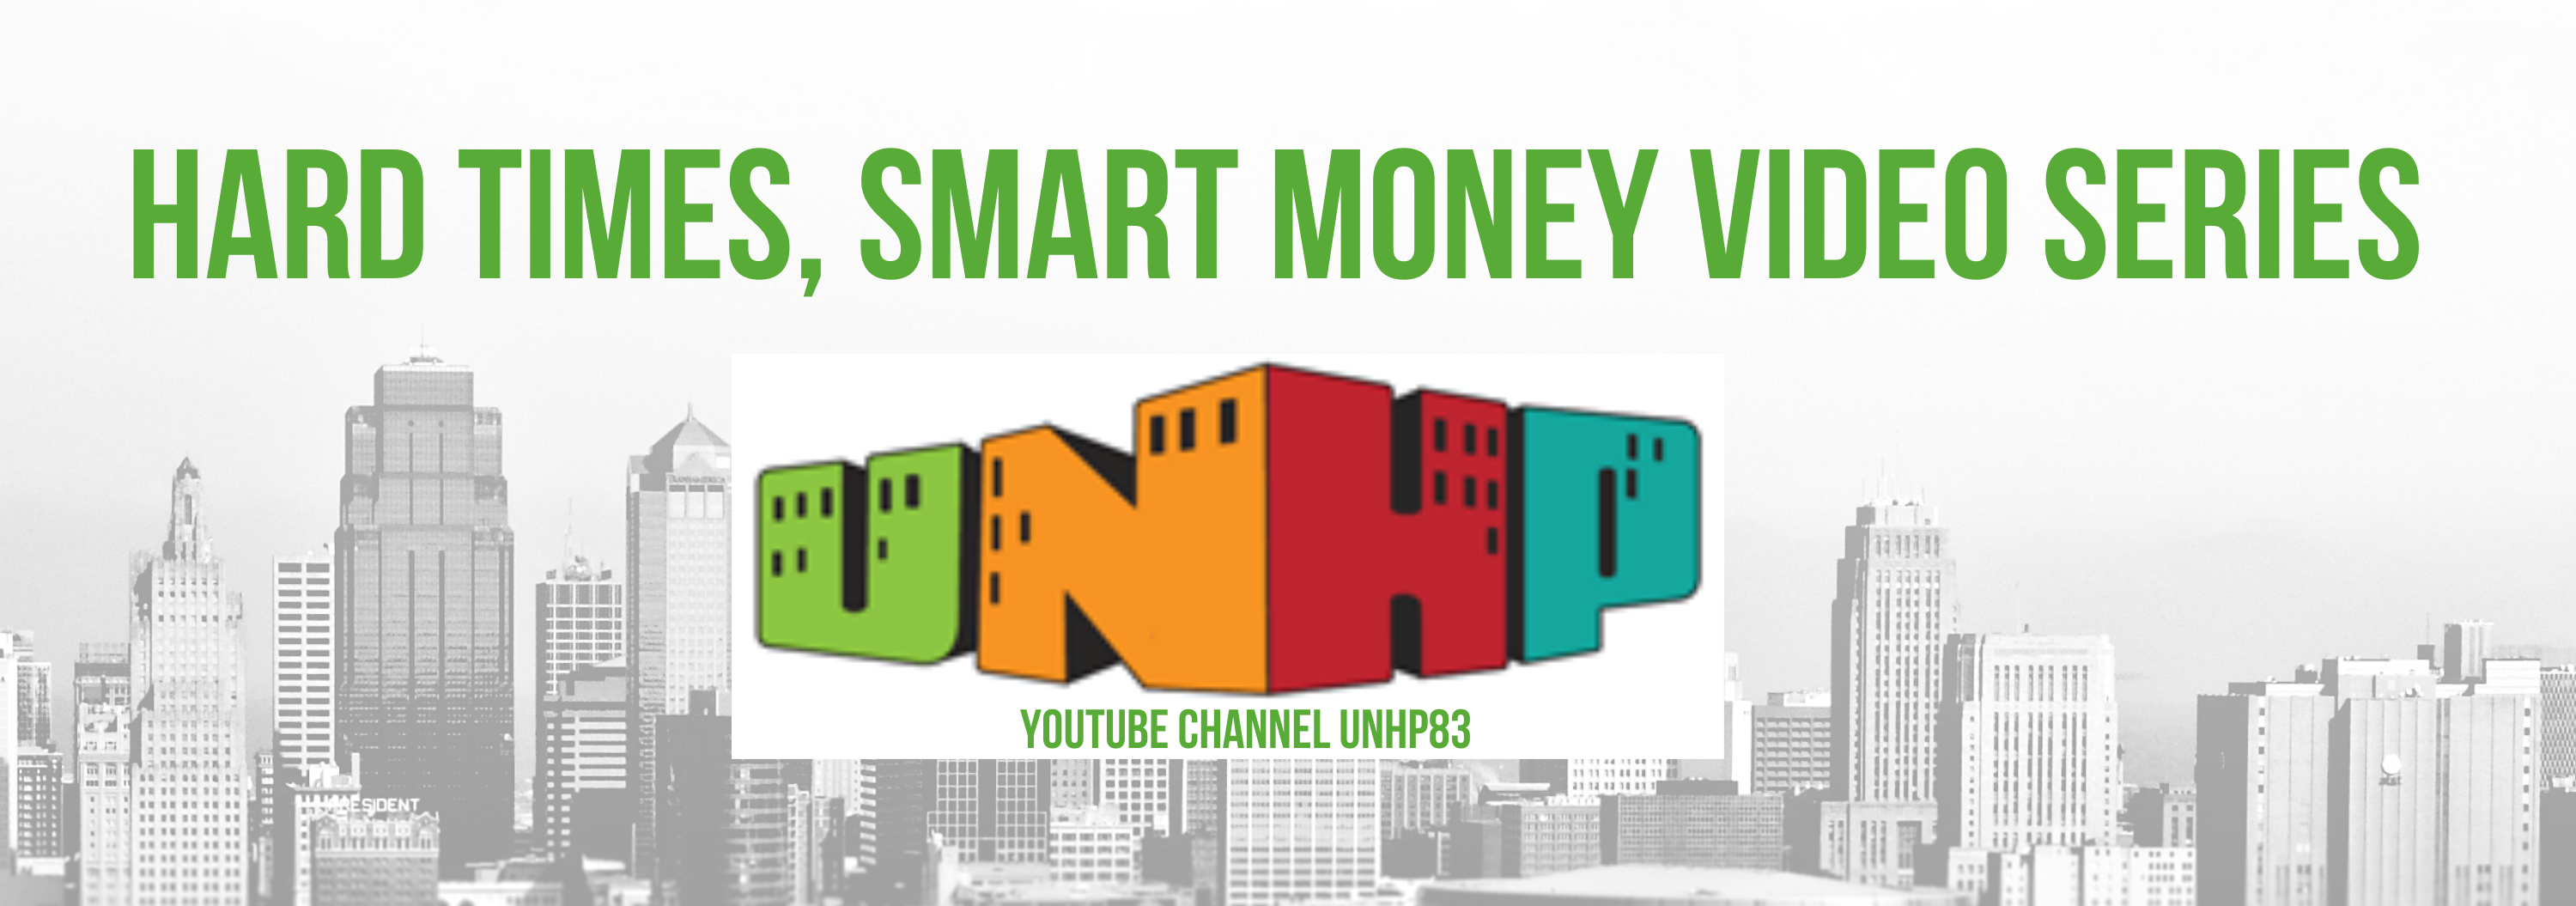 UNHP's Mini Financial Education Series: Hard Times Smart Money can be found on our Youtube Channel. Short smart videos to help you during these challenging financail times